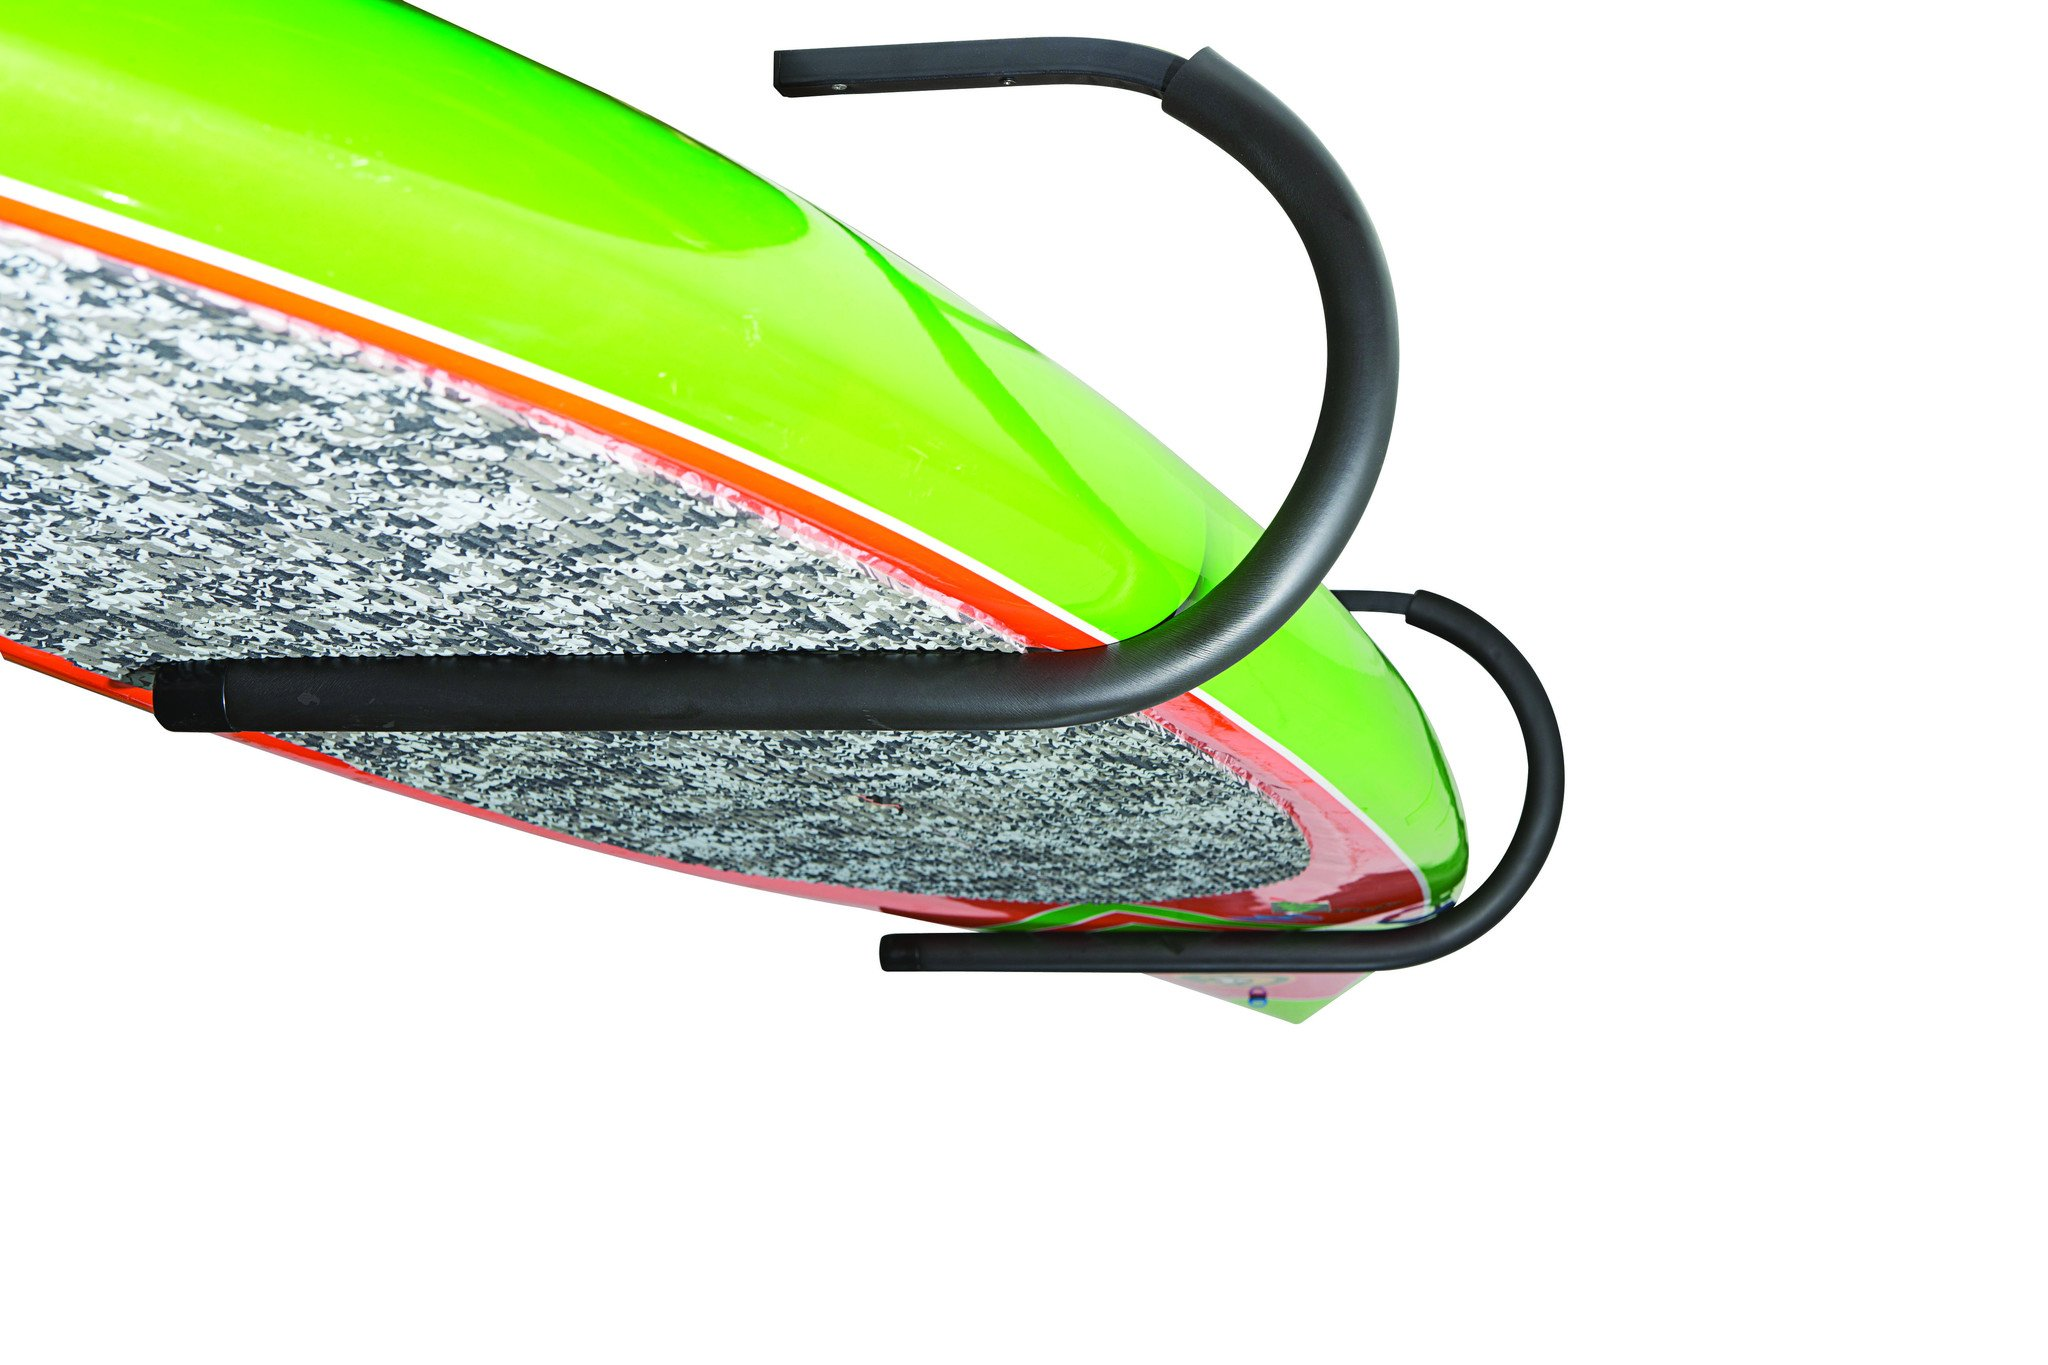 COR Board Racks Stand up Paddleboard | SUP | Surfboard Wall or Ceiling Rack | Simple Effective Design